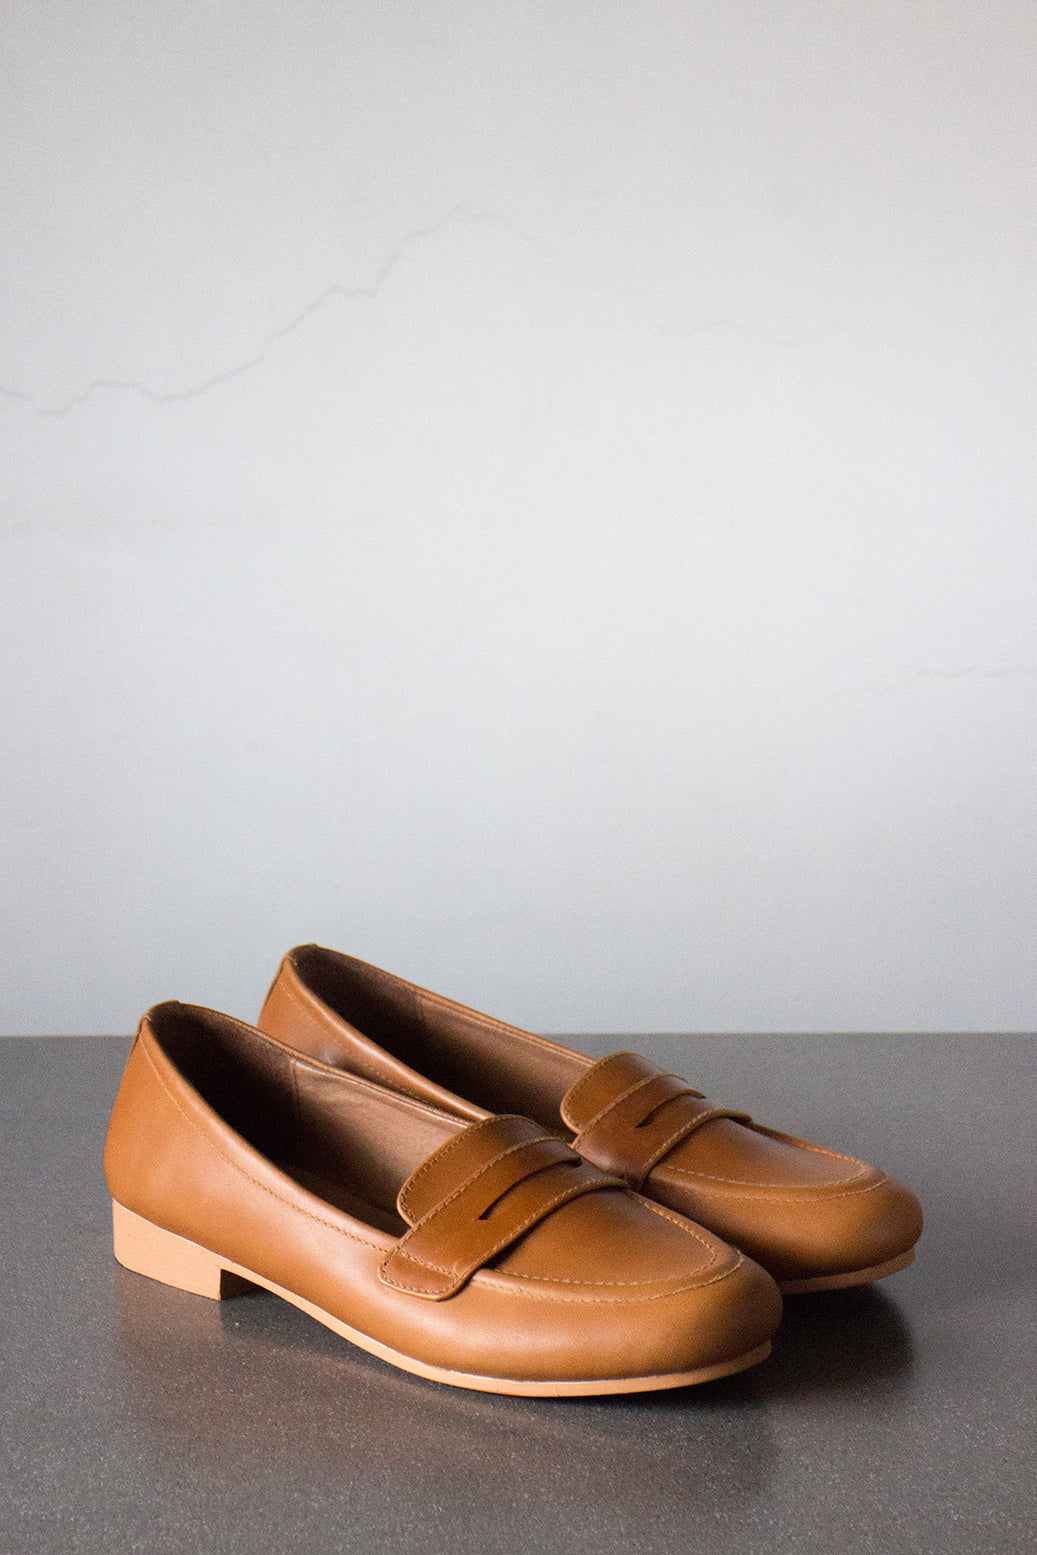 The Penny Loafer in Tan - andanté, loafers - loafers, loafers leather footwear